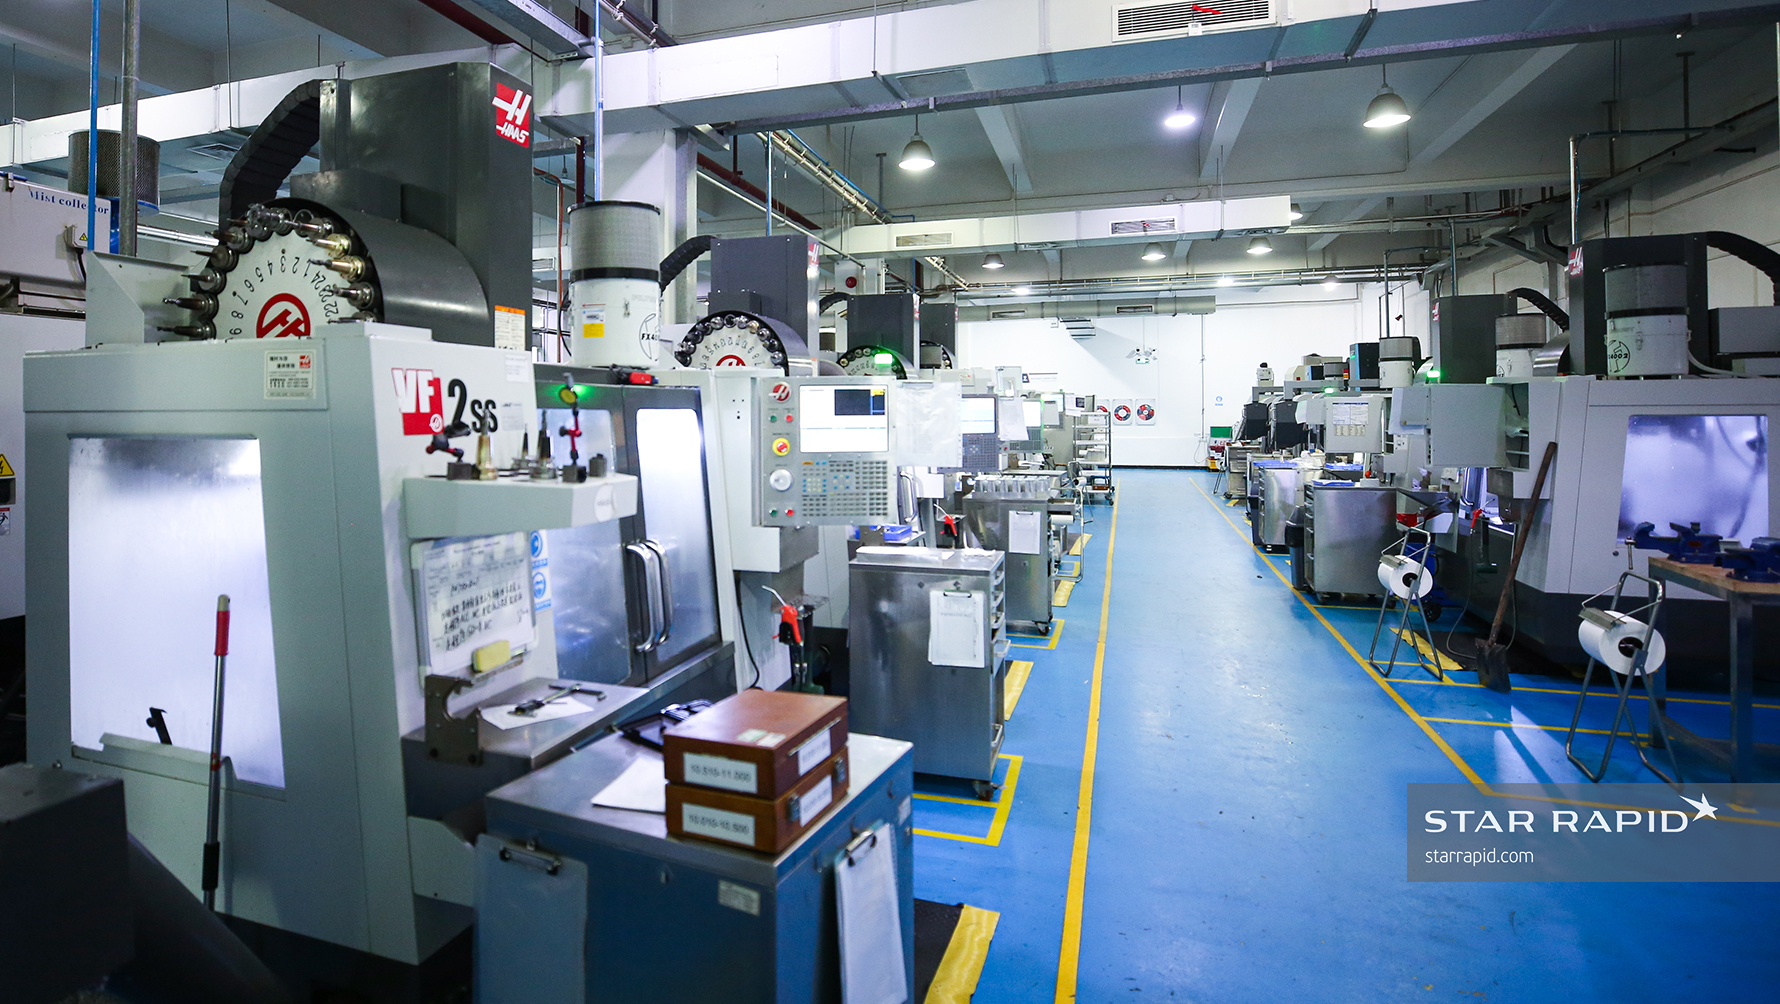 Star Rapid Manufacturing Equipment at Facility in Zhongshan